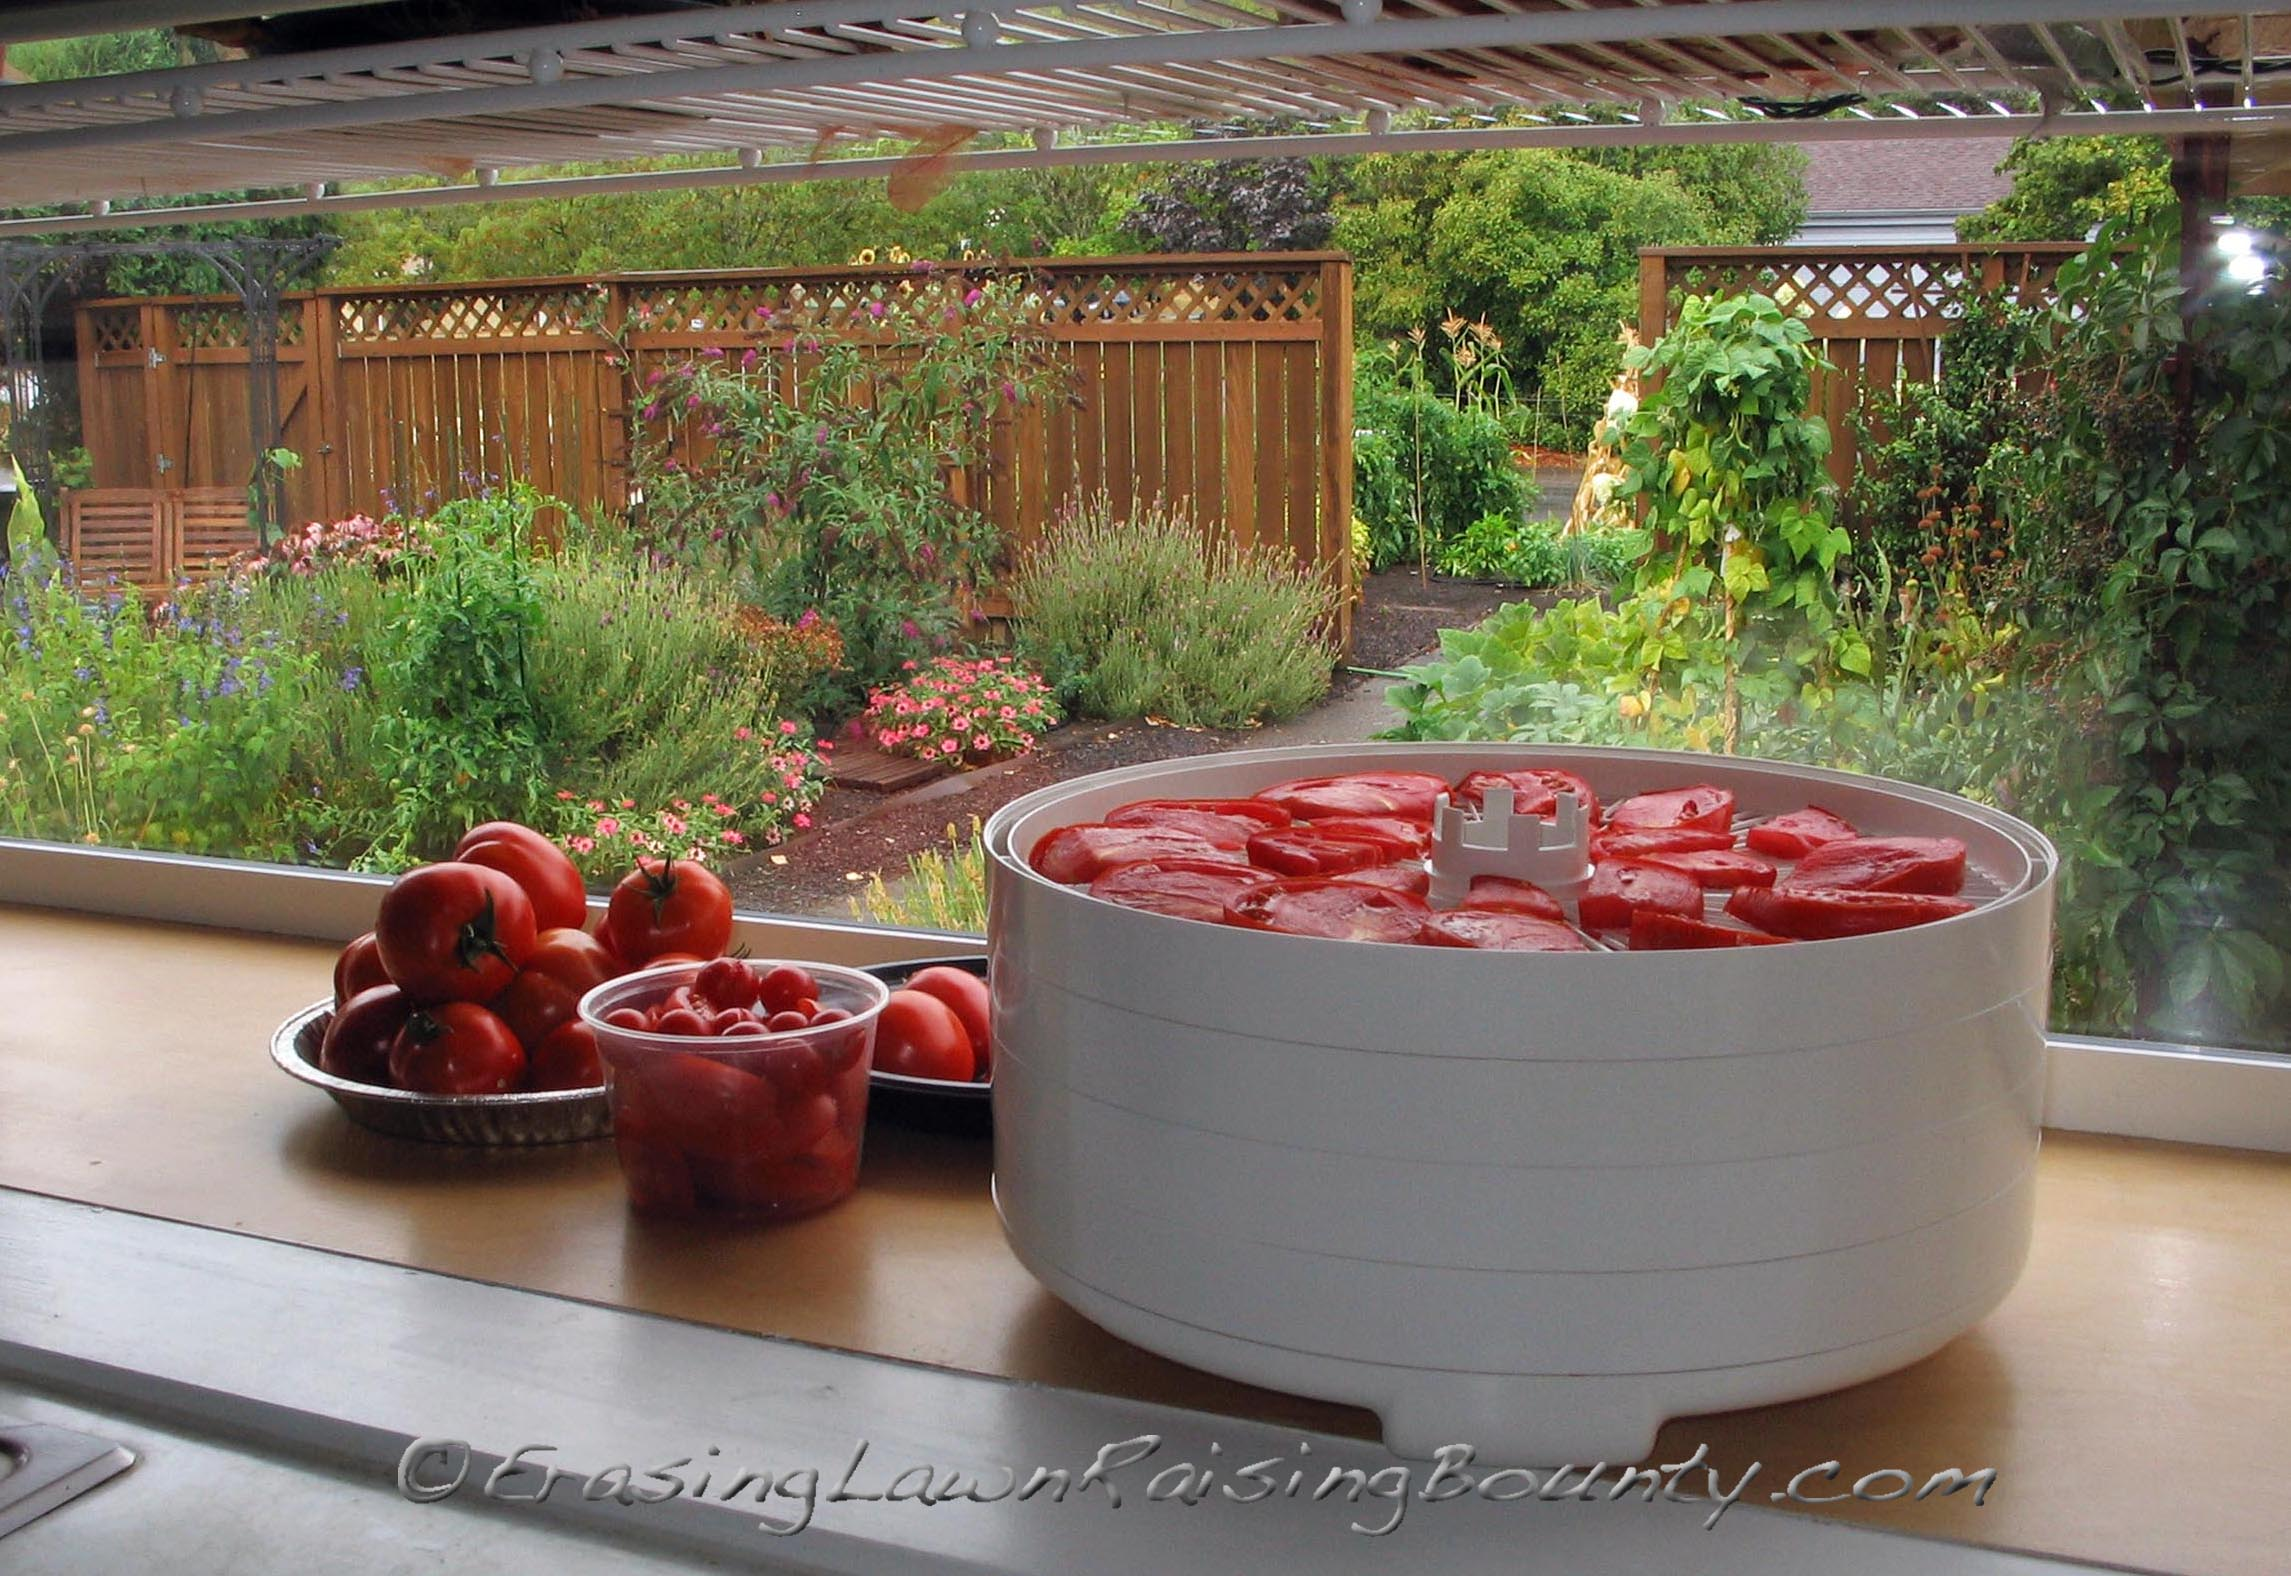 A rainy day task - drying tomatoes for winter